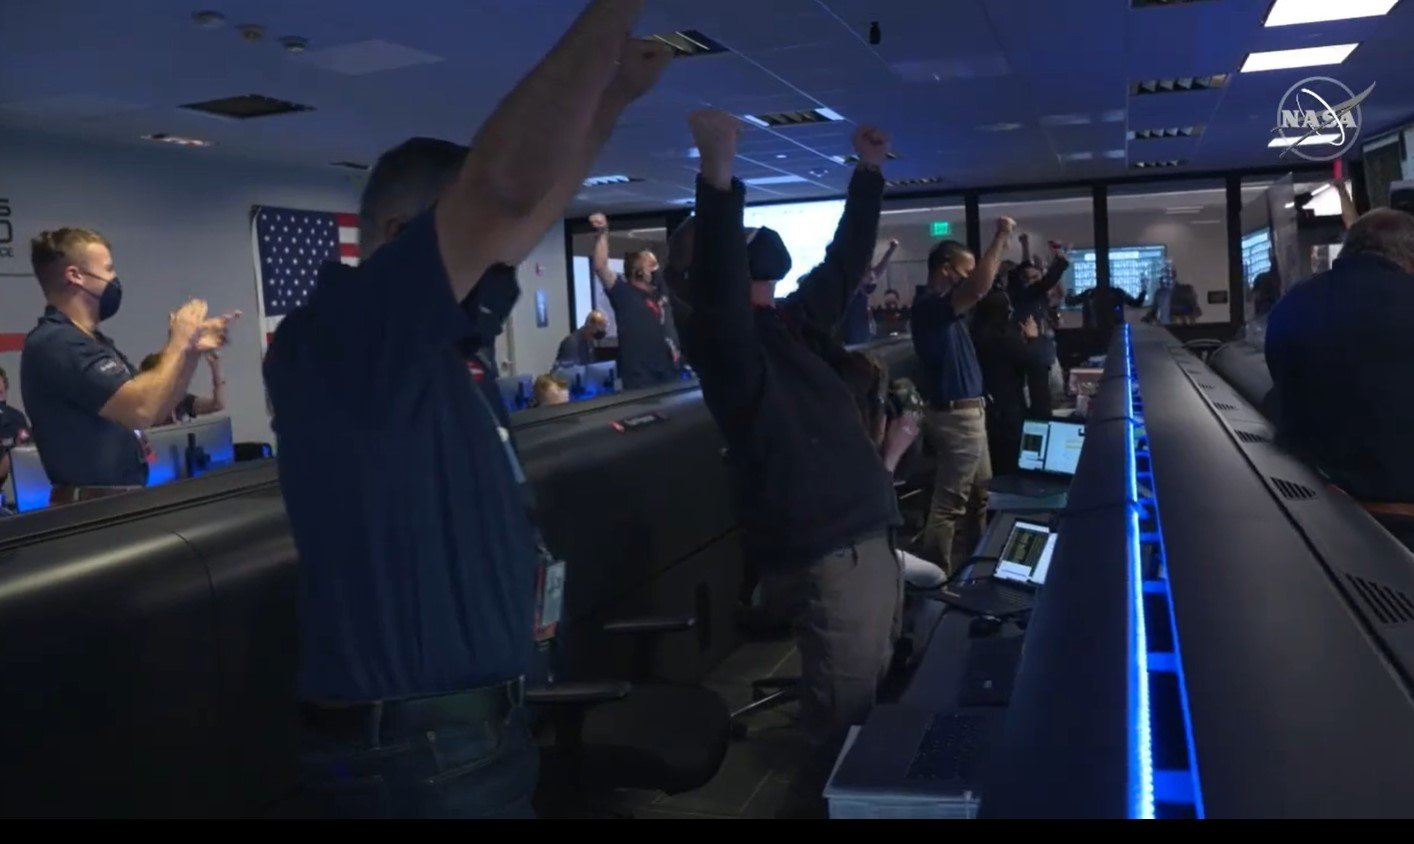 While power outages and water were a concern in Katy, many area space enthusiasts had a moment of celebration as NASA landed the Mars perseverance Rover on the red planet at about 3 p.m. the afternoon of Feb. 18.